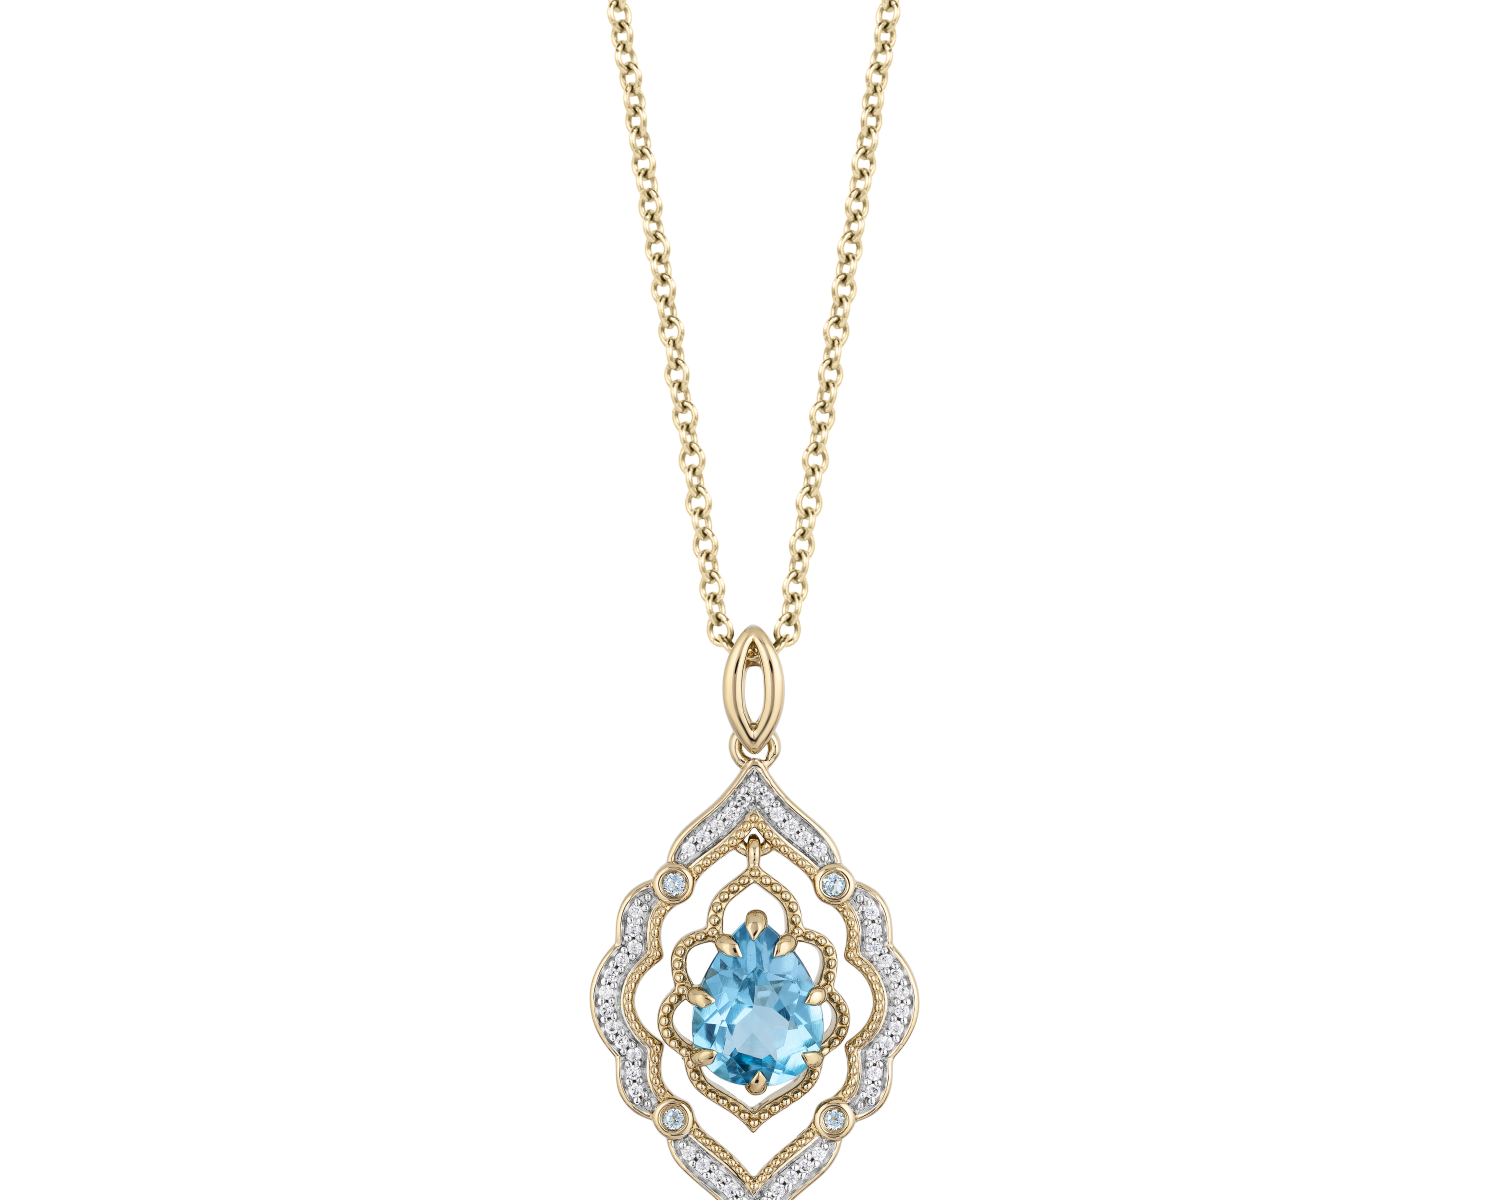 Disney Launches Aladdin Jewelry Collection With Zales